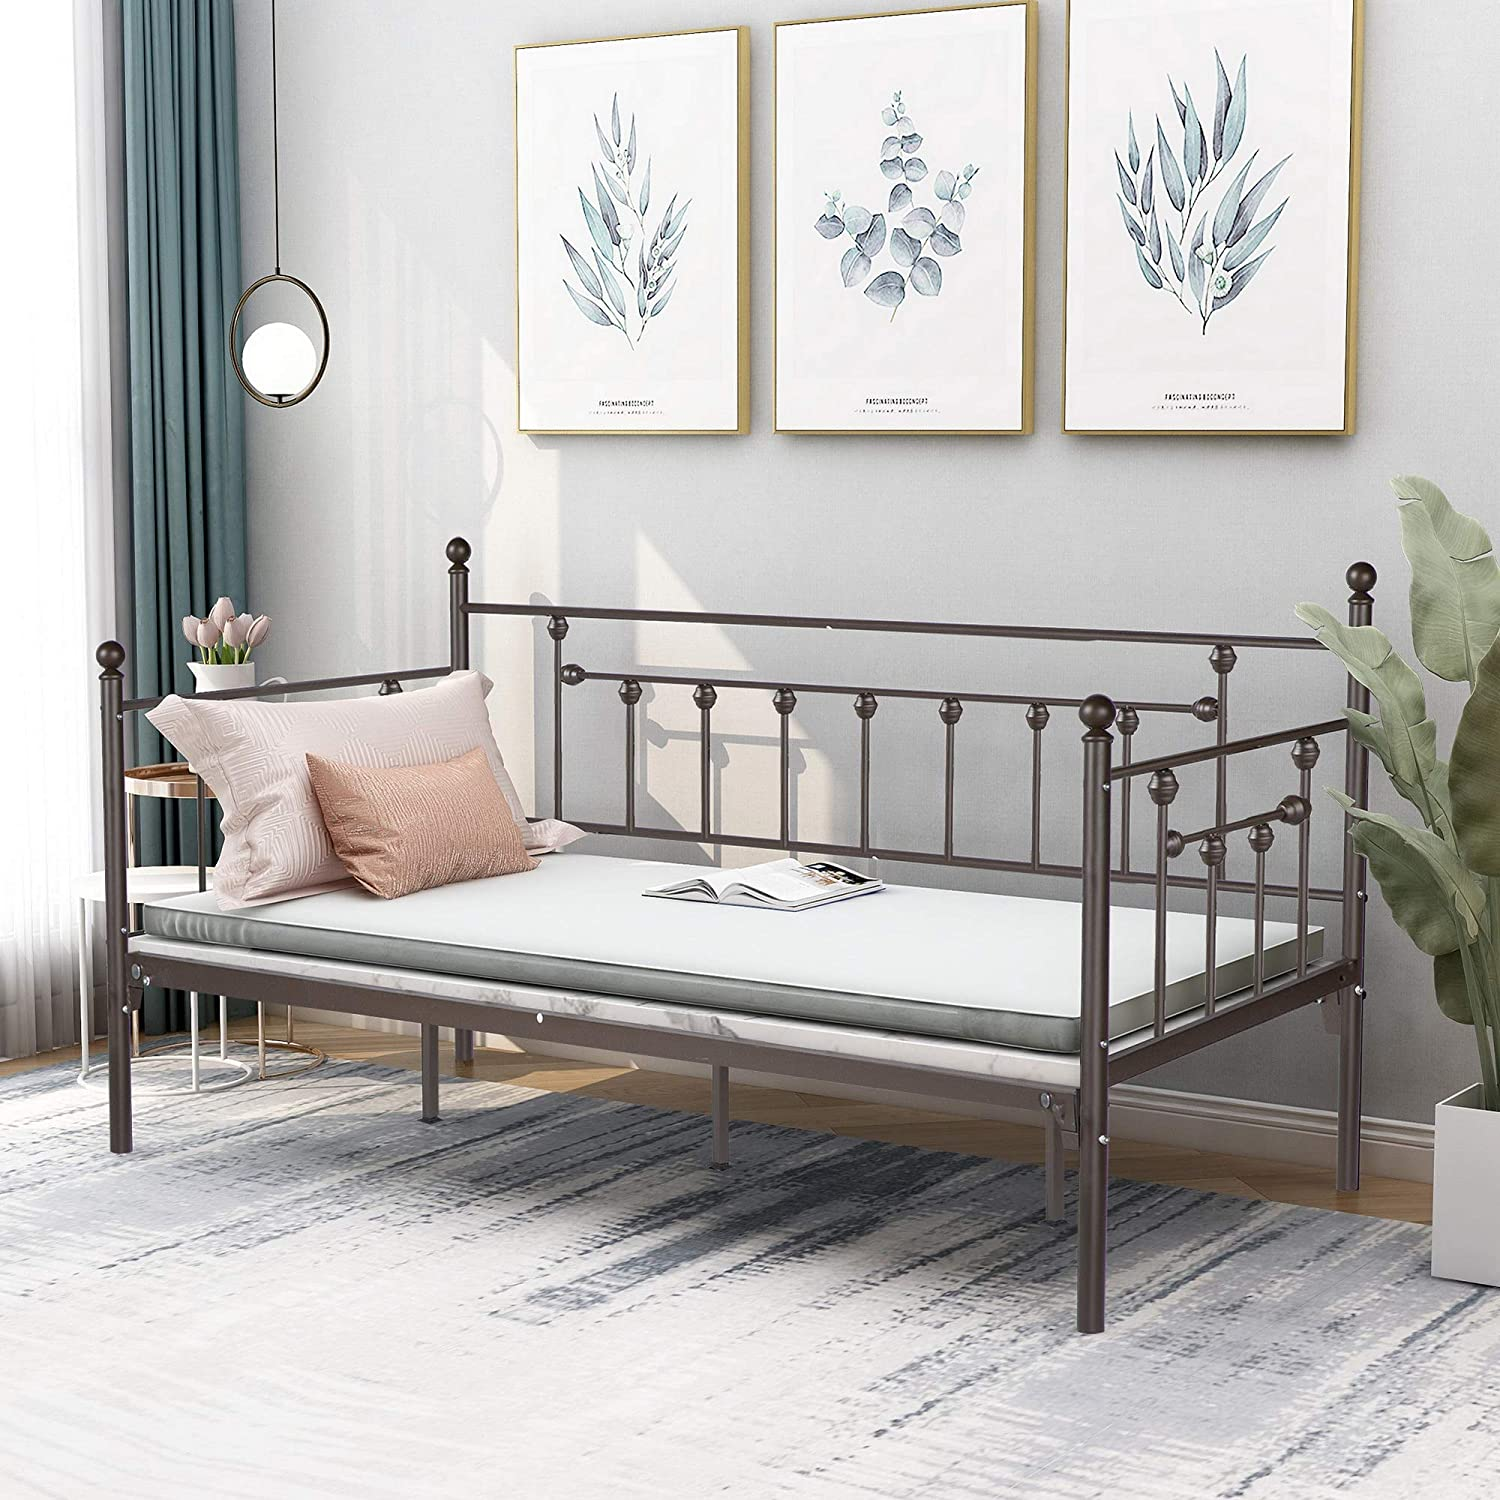 Metal Daybed Frame Twin Bed Sofa Slats with Headboard SEAL limited product Elegant Steel Plat